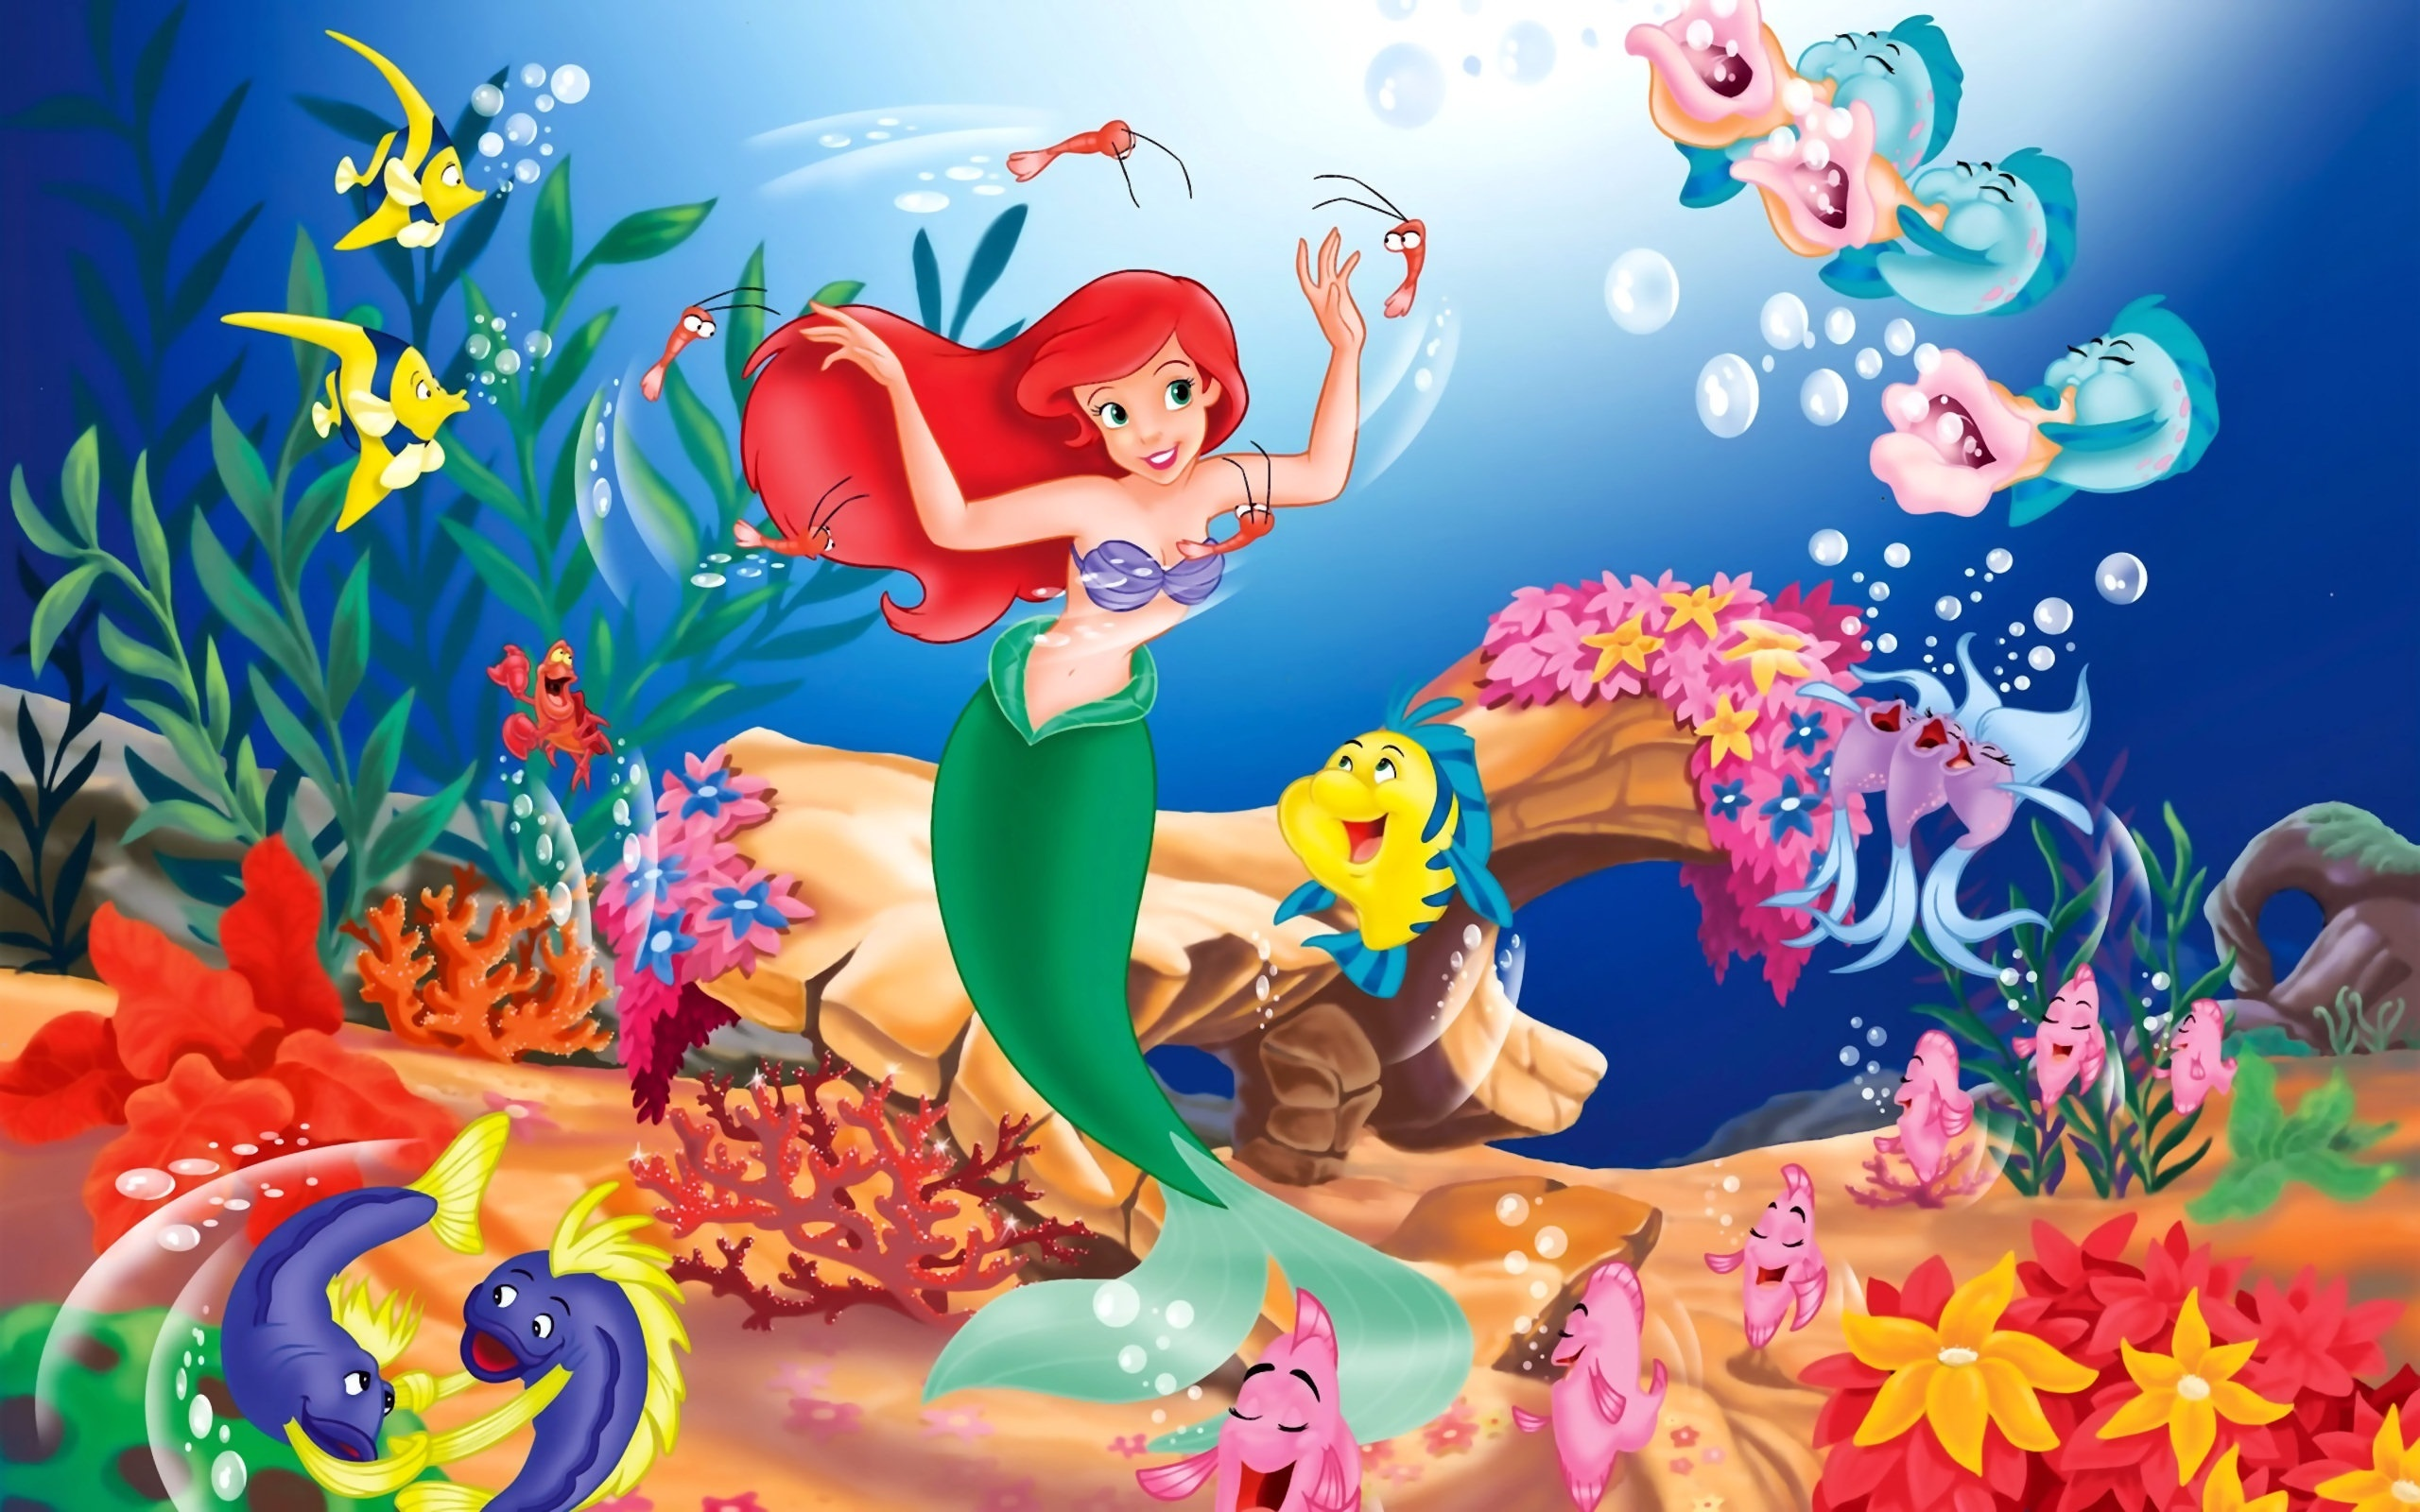 Disney The Little Mermaid Wallpapers In Jpg Format For Free Download